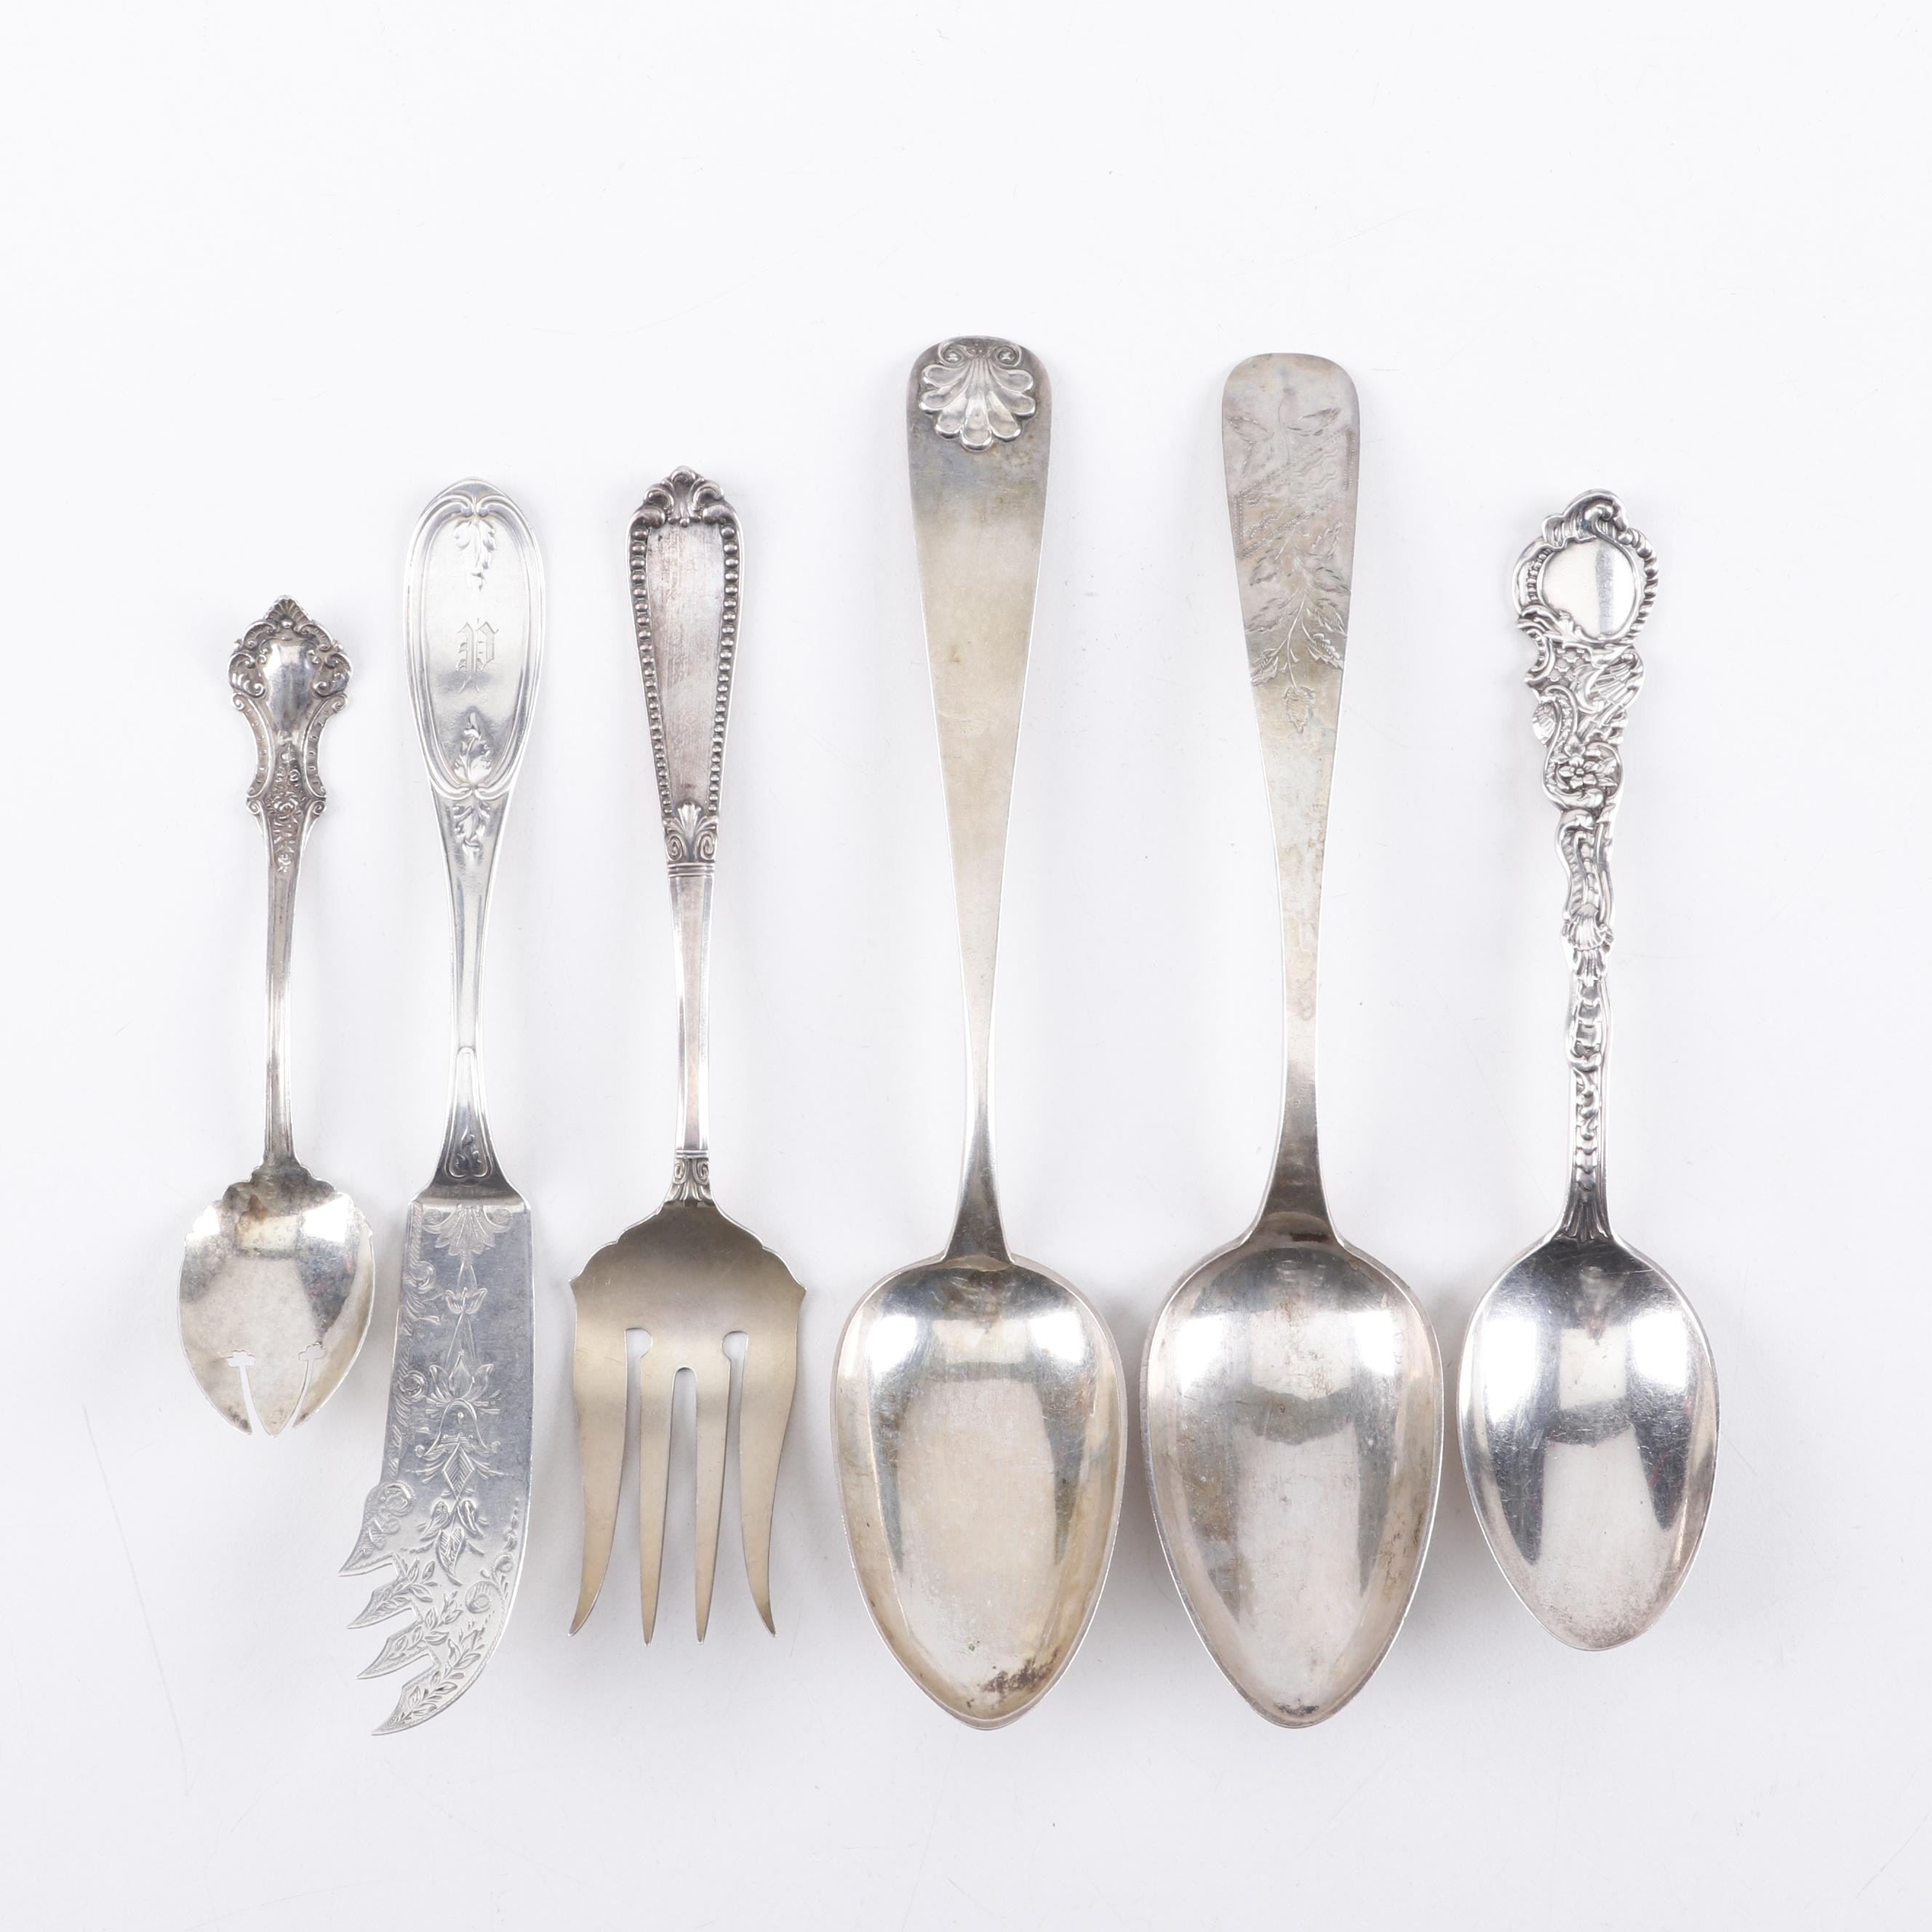 Mixed Serving Utensils of Sterling Silver, Silver Plate, and Coin Silver